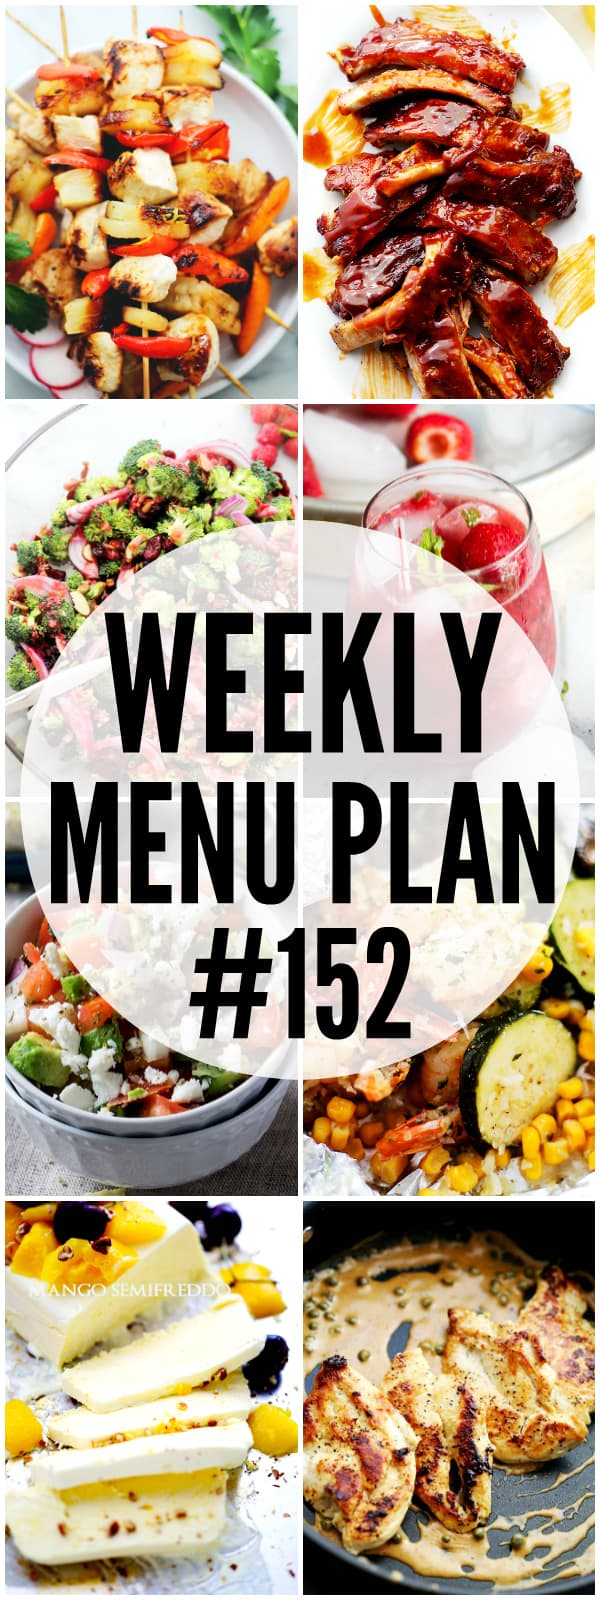 WEEKLY MENU PLAN (#152) - A delicious collection of dinner, side dish and dessert recipes to help you plan your weekly menu and make life easier for you! #menuplanning #weeklyspread #weekdaysupper #dinnertime #dinnerrecipes